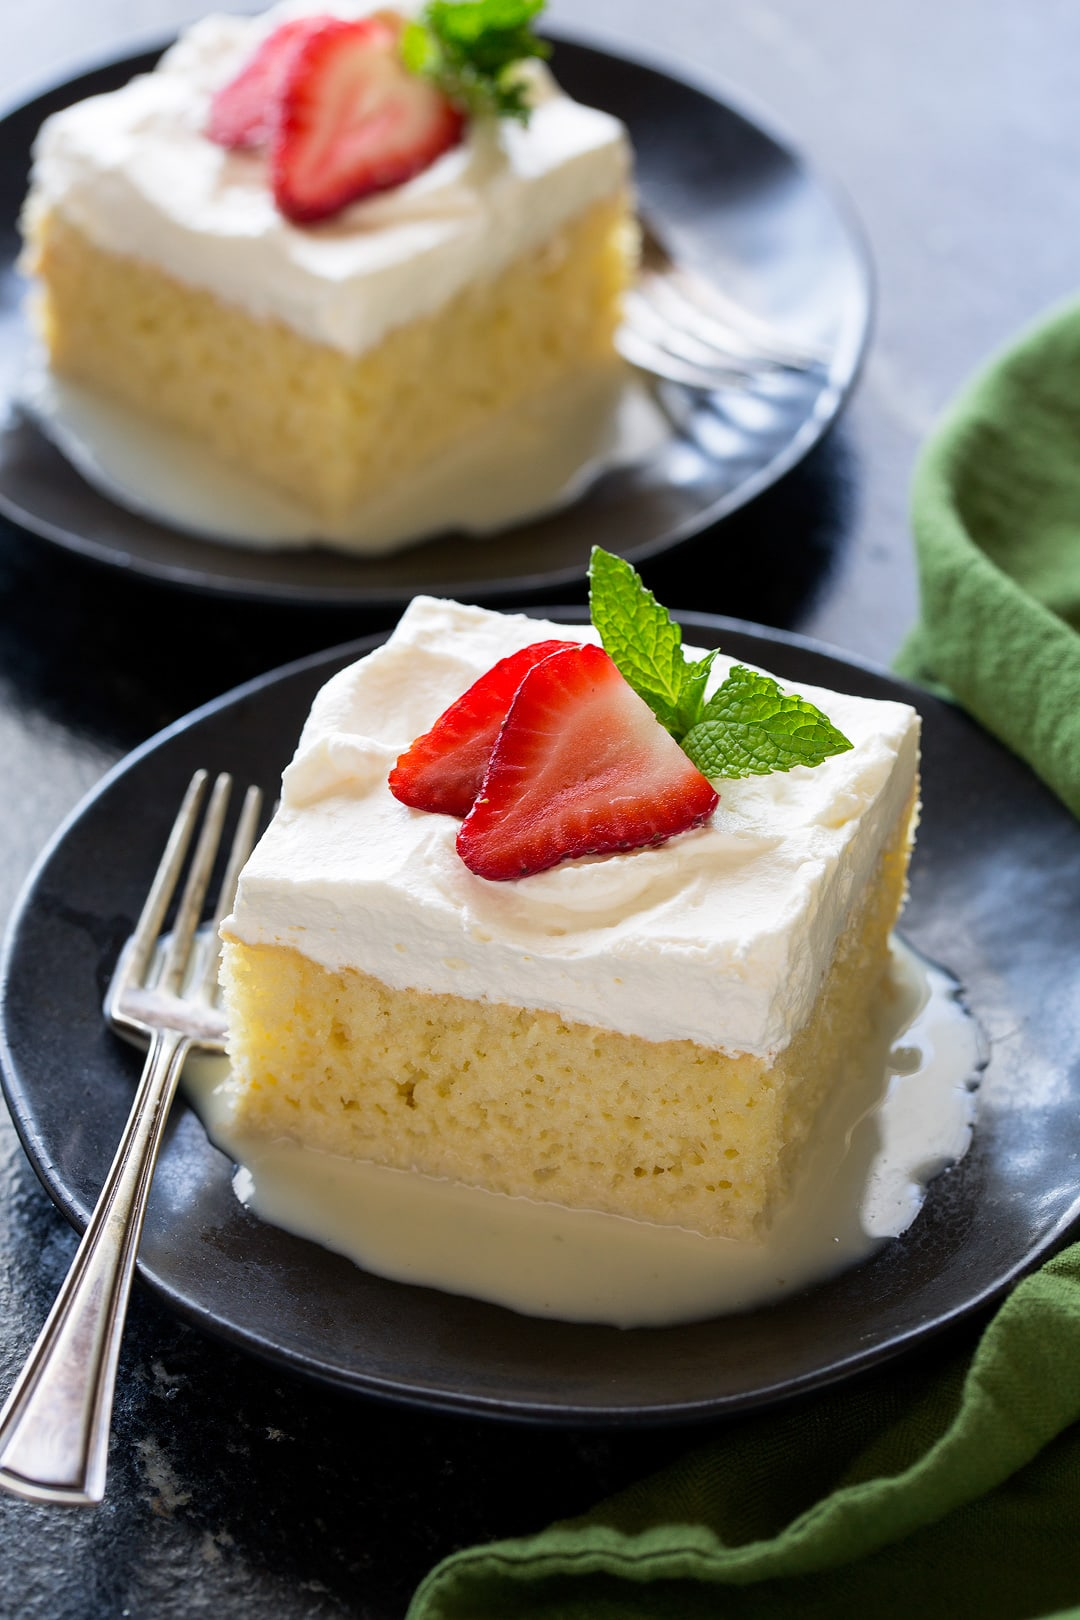 print tres leches cake ingredients cake 1 1 2 cups 200g cake flour 1 1 ...